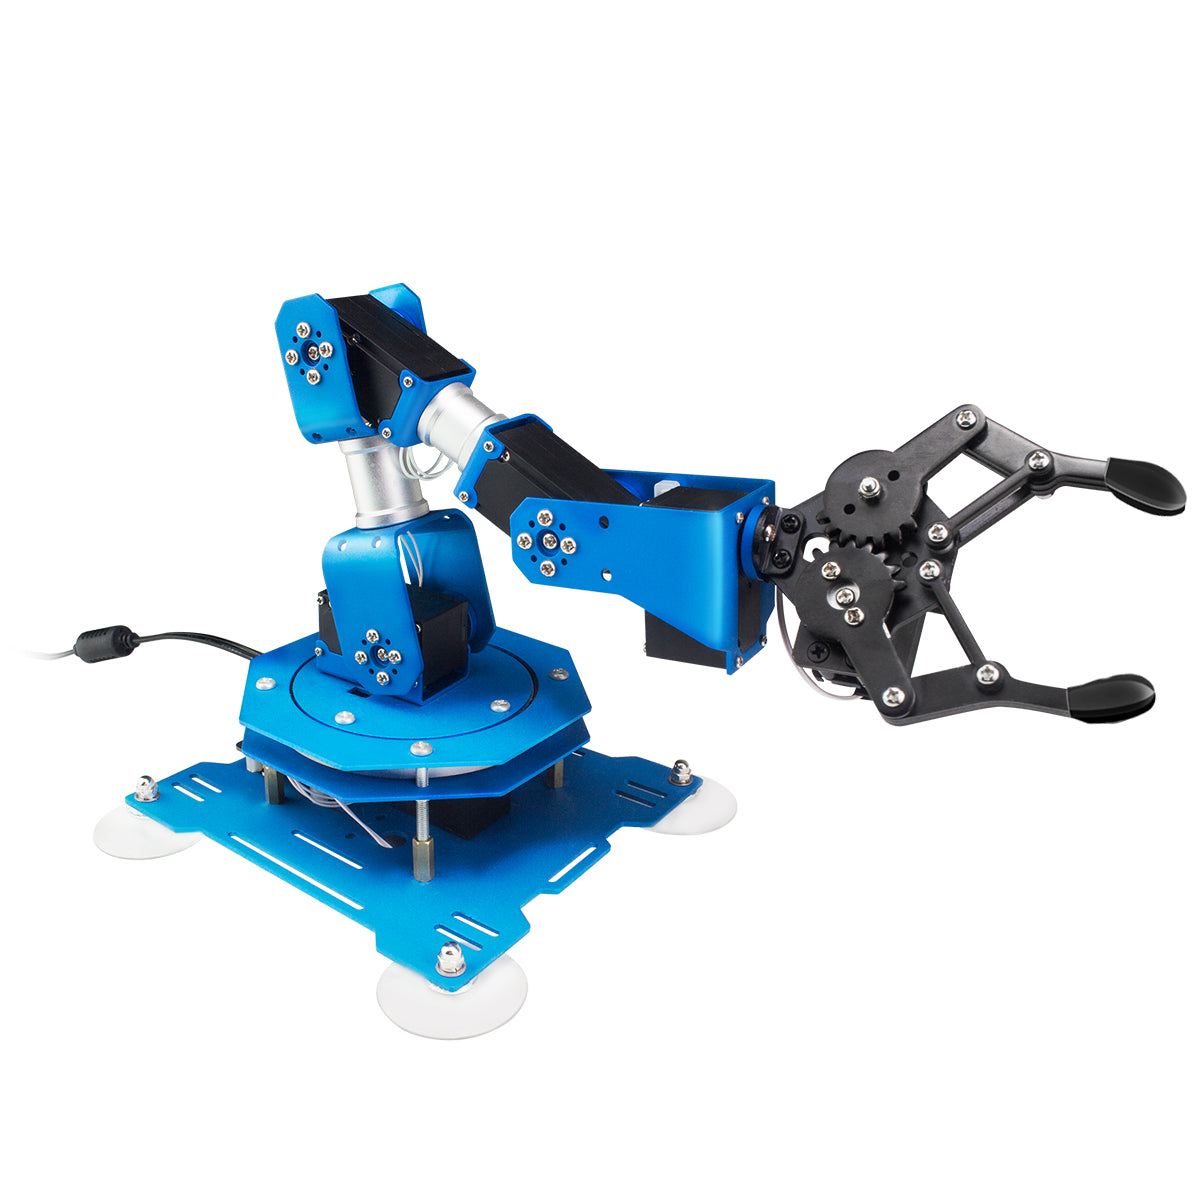 xArm: Hiwonder 6DOF Bus Servo Robotic Arm based on Scratch/Arduino Programmable Robotic Arm